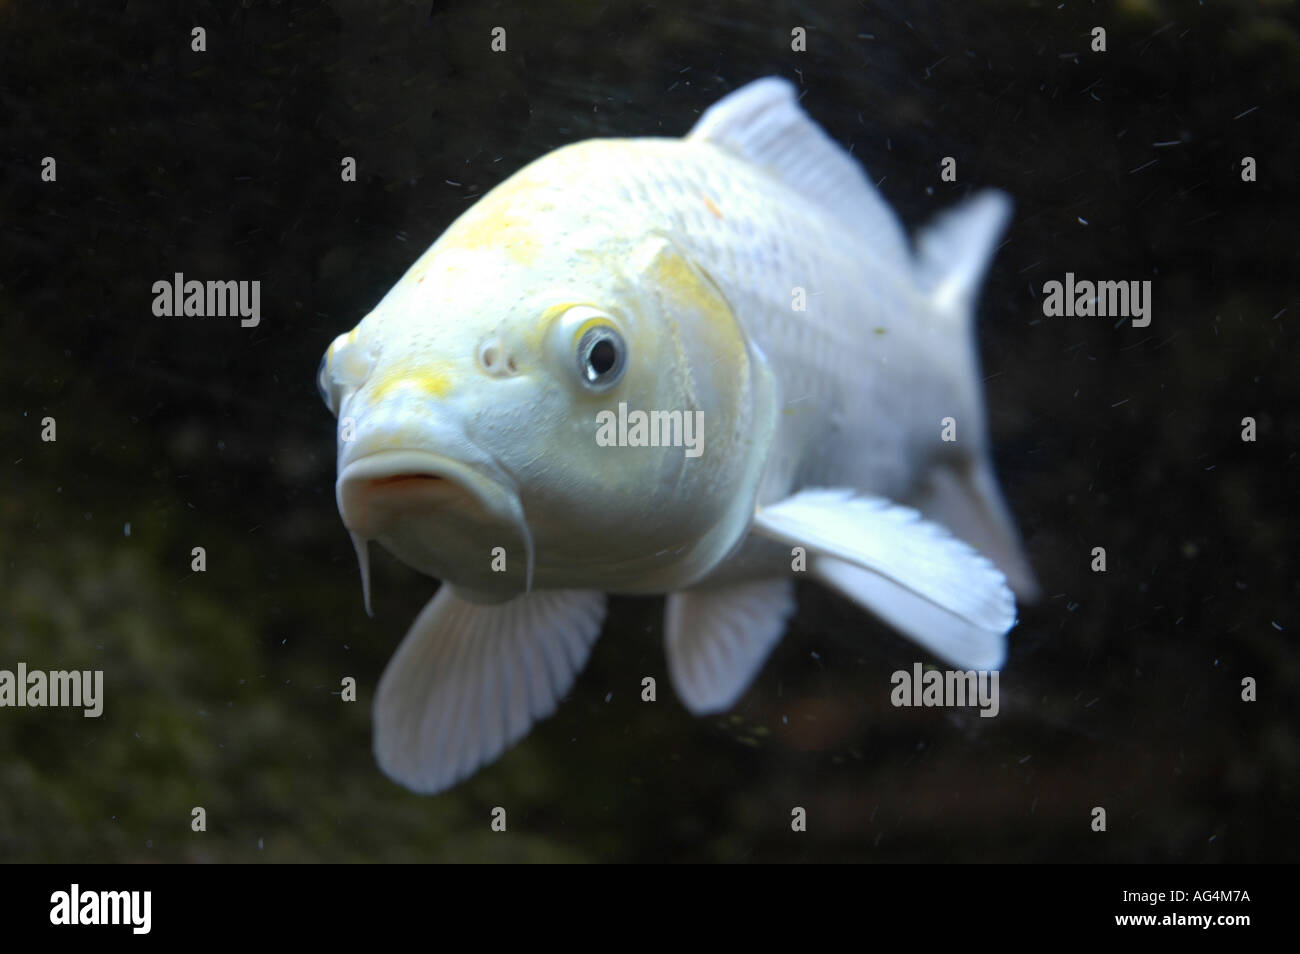 White fish close up in cold water tank stock photo for What are cold water fish